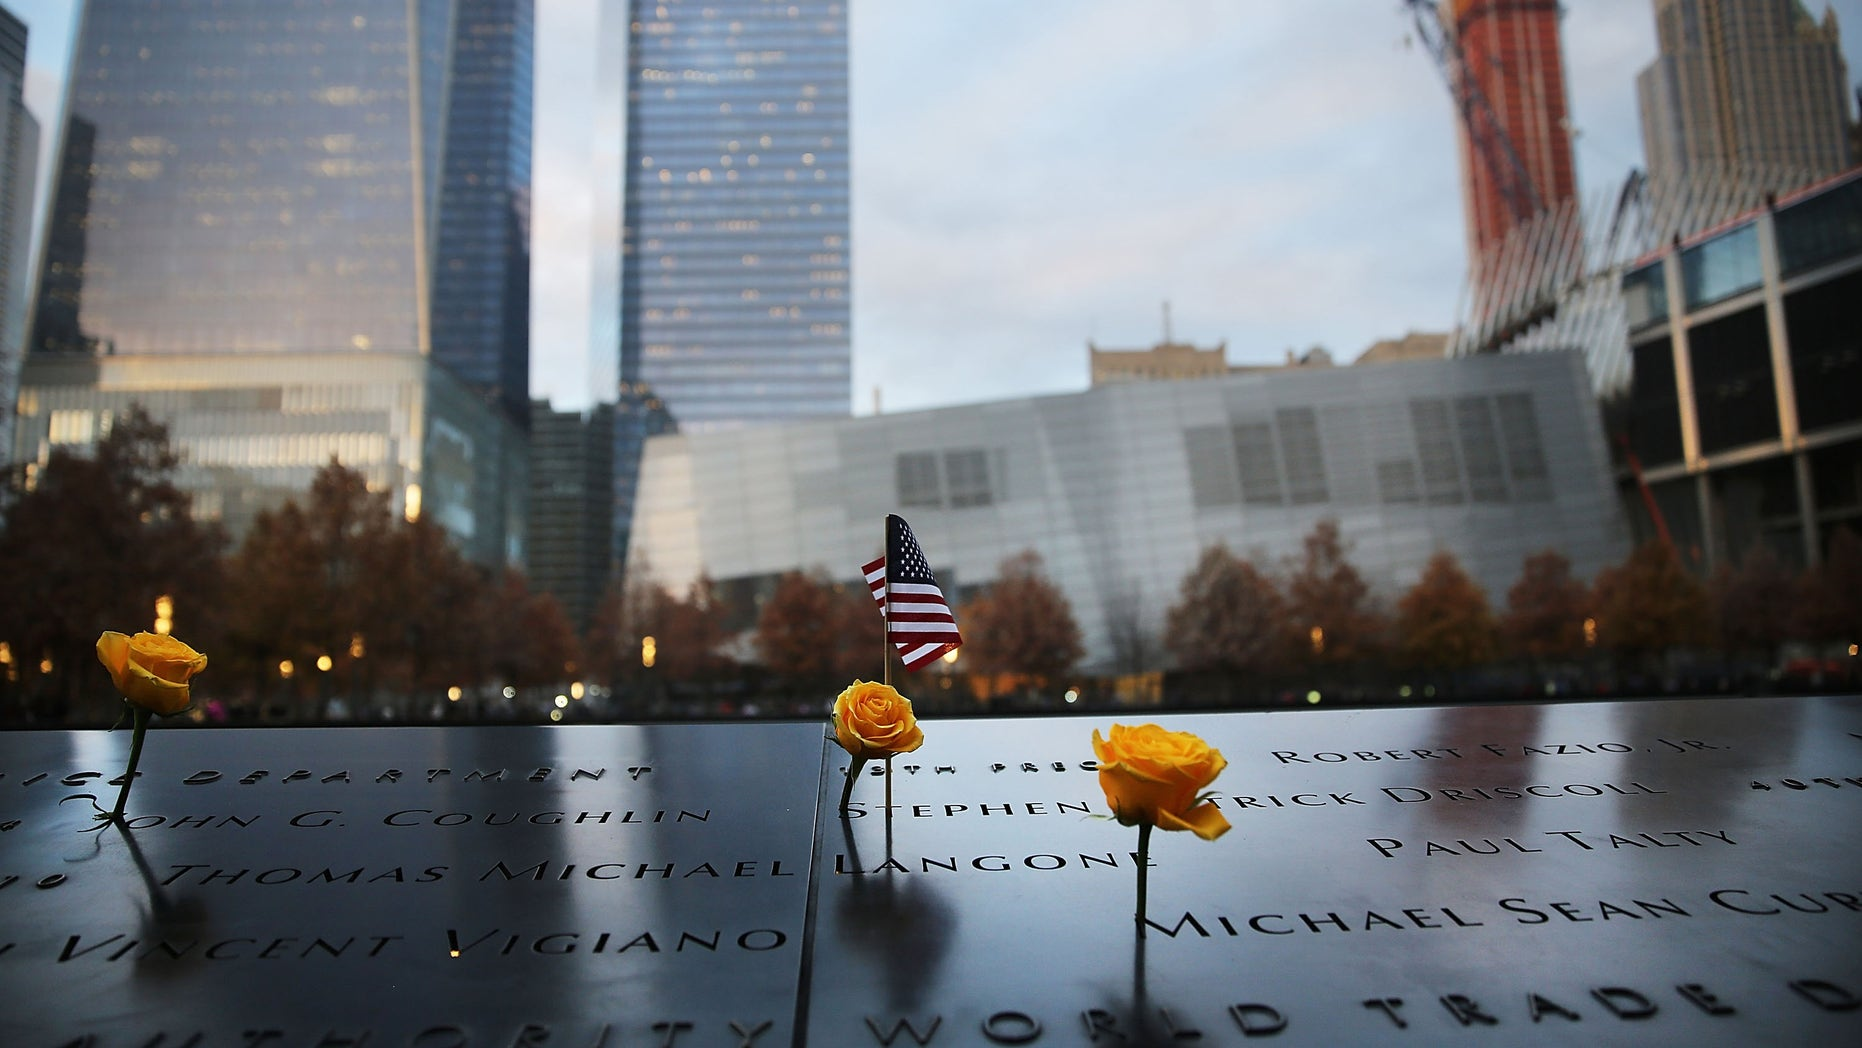 NEW YORK, NY - NOVEMBER 11:  Flowers are viewed at the 9/11 Memorial where flowers are placed on the names of veterans killed on September 11, 2001 for Veterans Day in New York on November 11, 2014 in New York City. New York celebrated the day with the annual Veteran's Day Parade, which is often called the largest Veteran's Day Parade in the country.  (Photo by Spencer Platt/Getty Images)